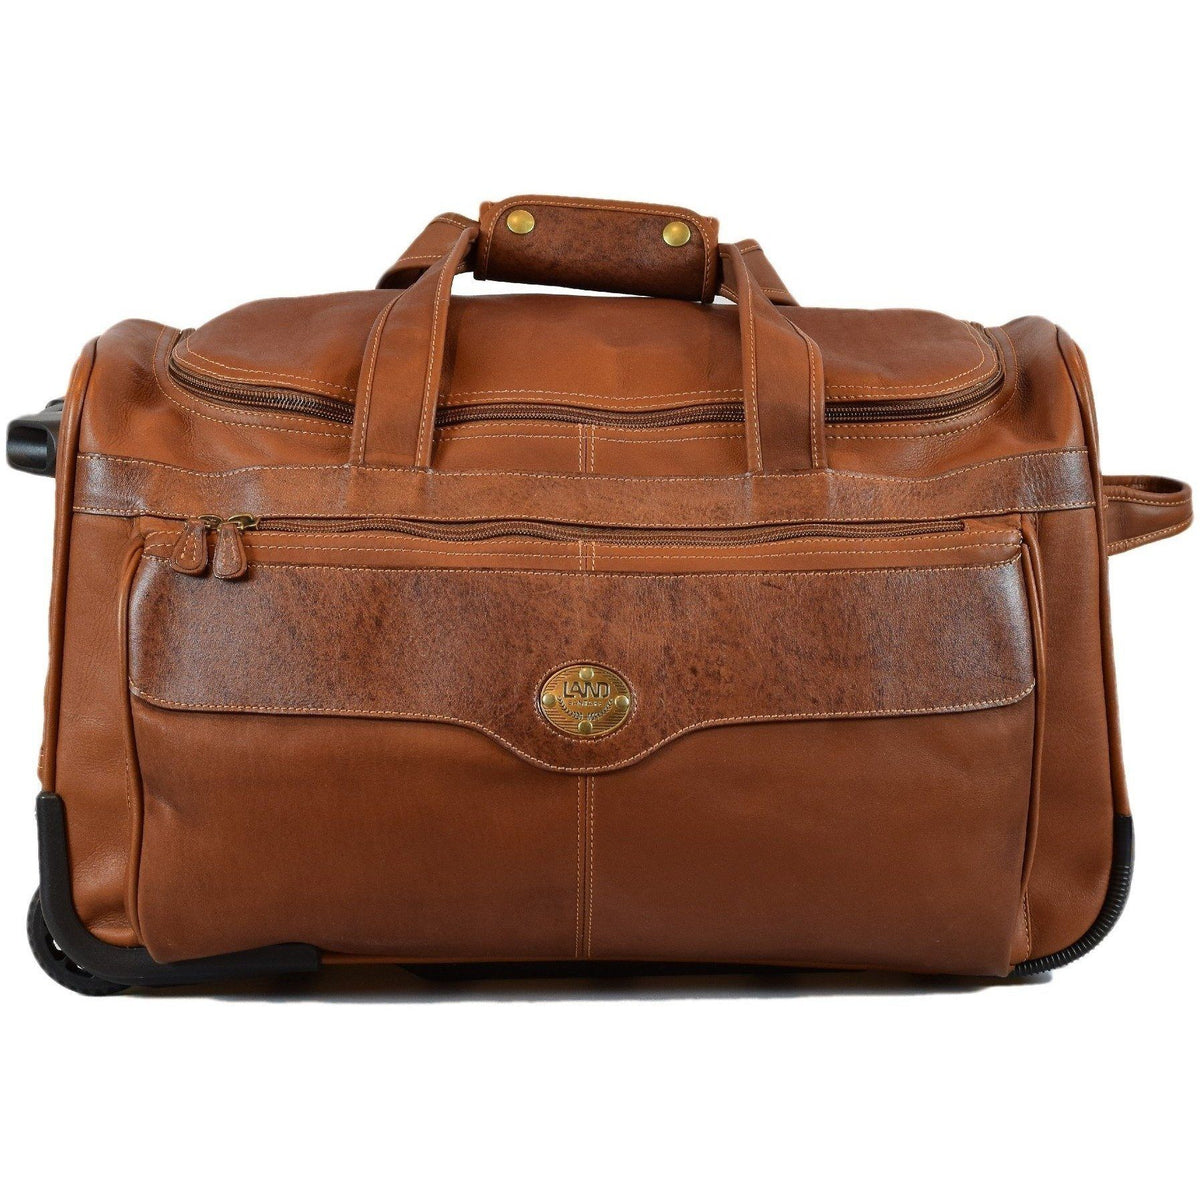 Santa Fe Cruiser Wheeled Duffel Bag